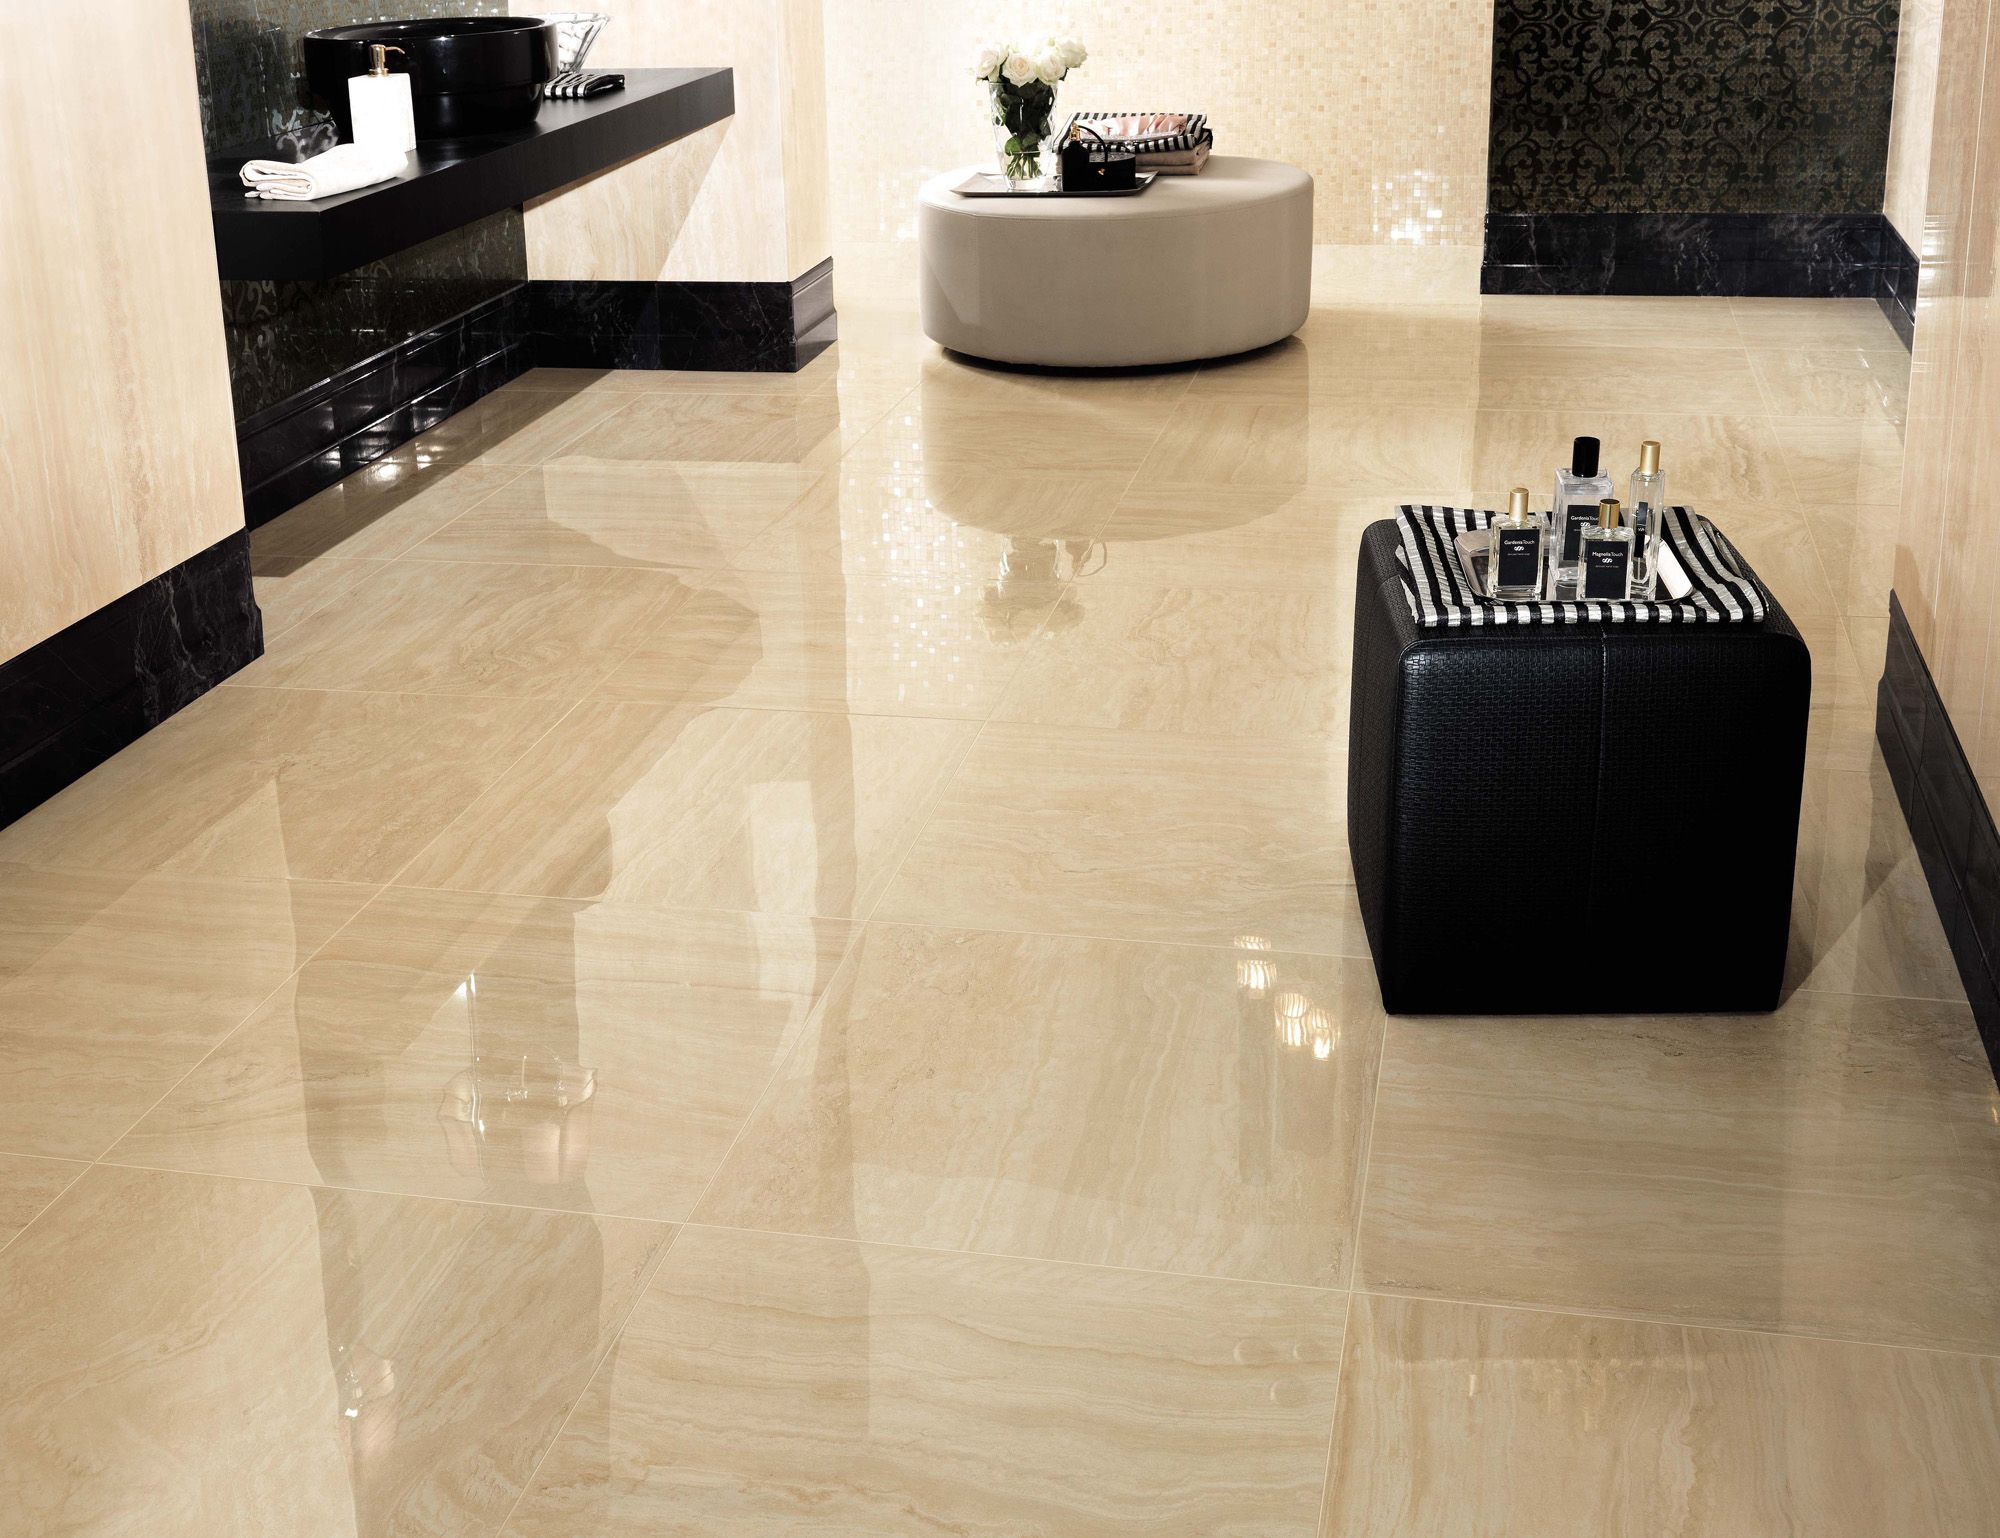 Minoli tiles this stylish tile is travertino albastrino lappato beige travertine porcelain tiles are the best solution for a classic beautiful marble look evolution marvel is available matt and polished and in big sizes dailygadgetfo Gallery